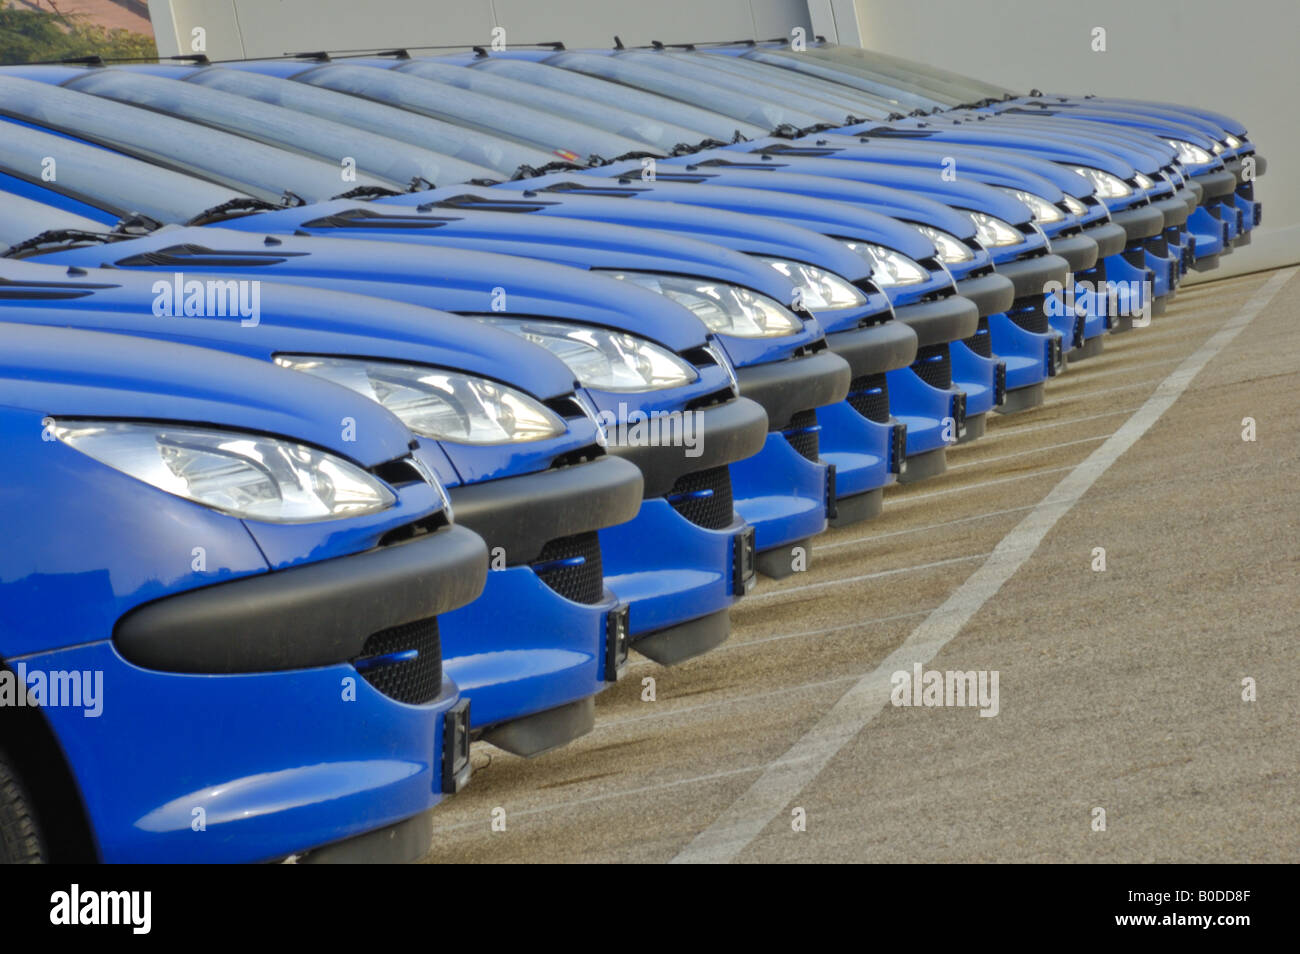 Cars in a line - Stock Image